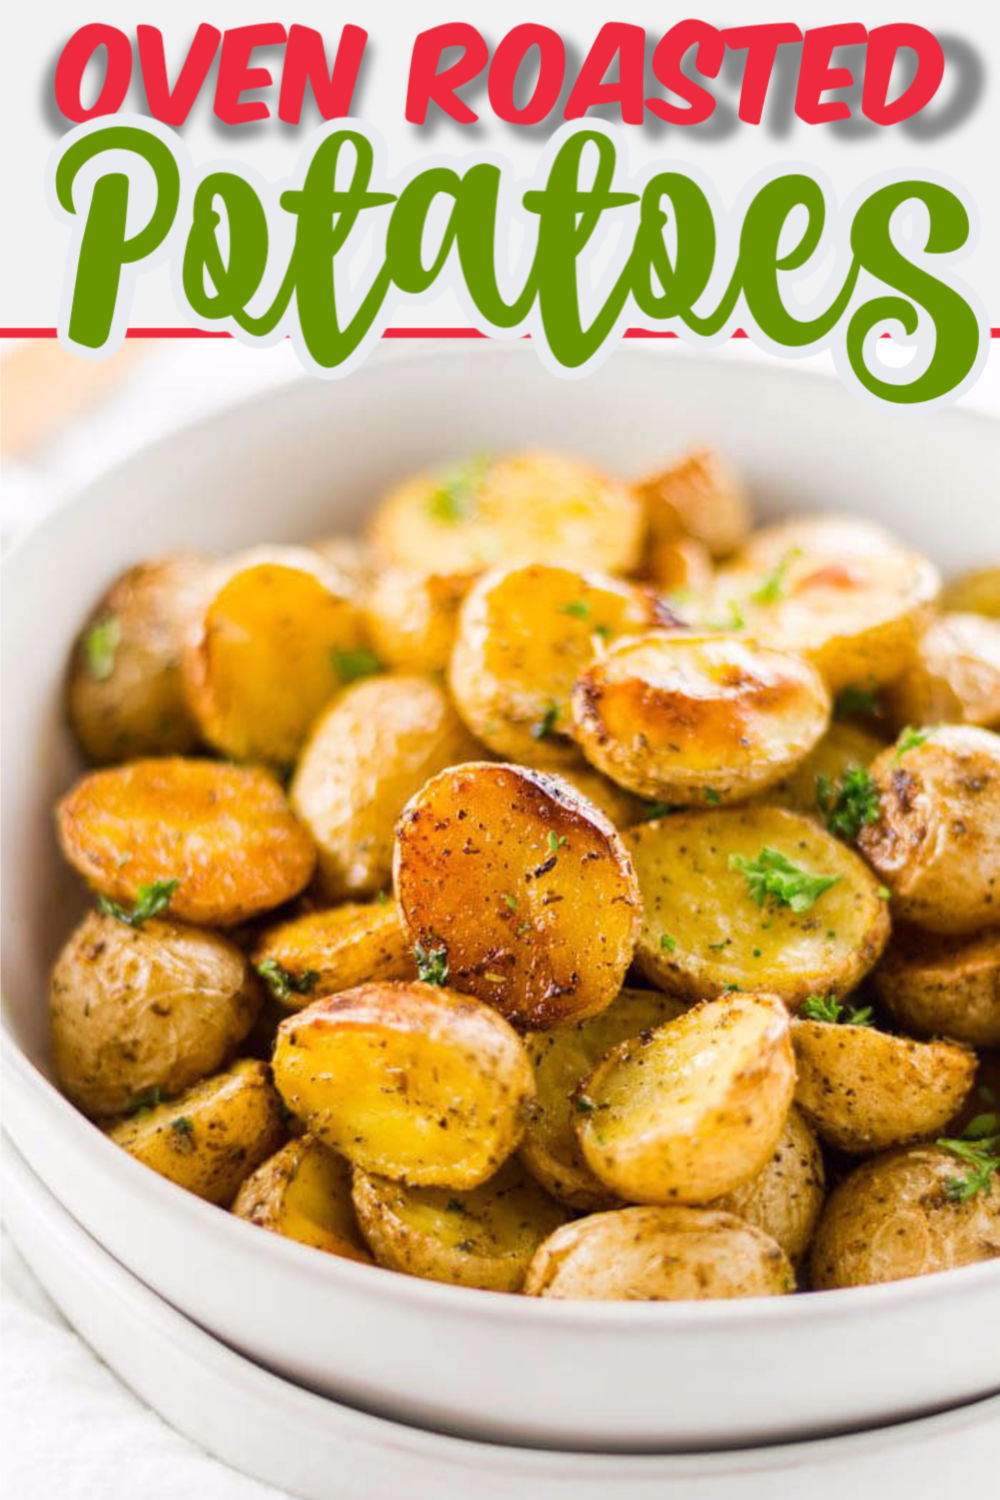 This crispy oven roasted potatoes recipe is ready in under an hour, and is the perfect vegetarian side dish recipe. Whether it\'s a Christmas or Thanksgiving side dish or just something you\'re throwing together for an easy weeknight dinner. Honey Gold Potatoes are the best variety for roasting! You can\'t beat these delicious spuds! #honeygold #ovenroasted #potatoes